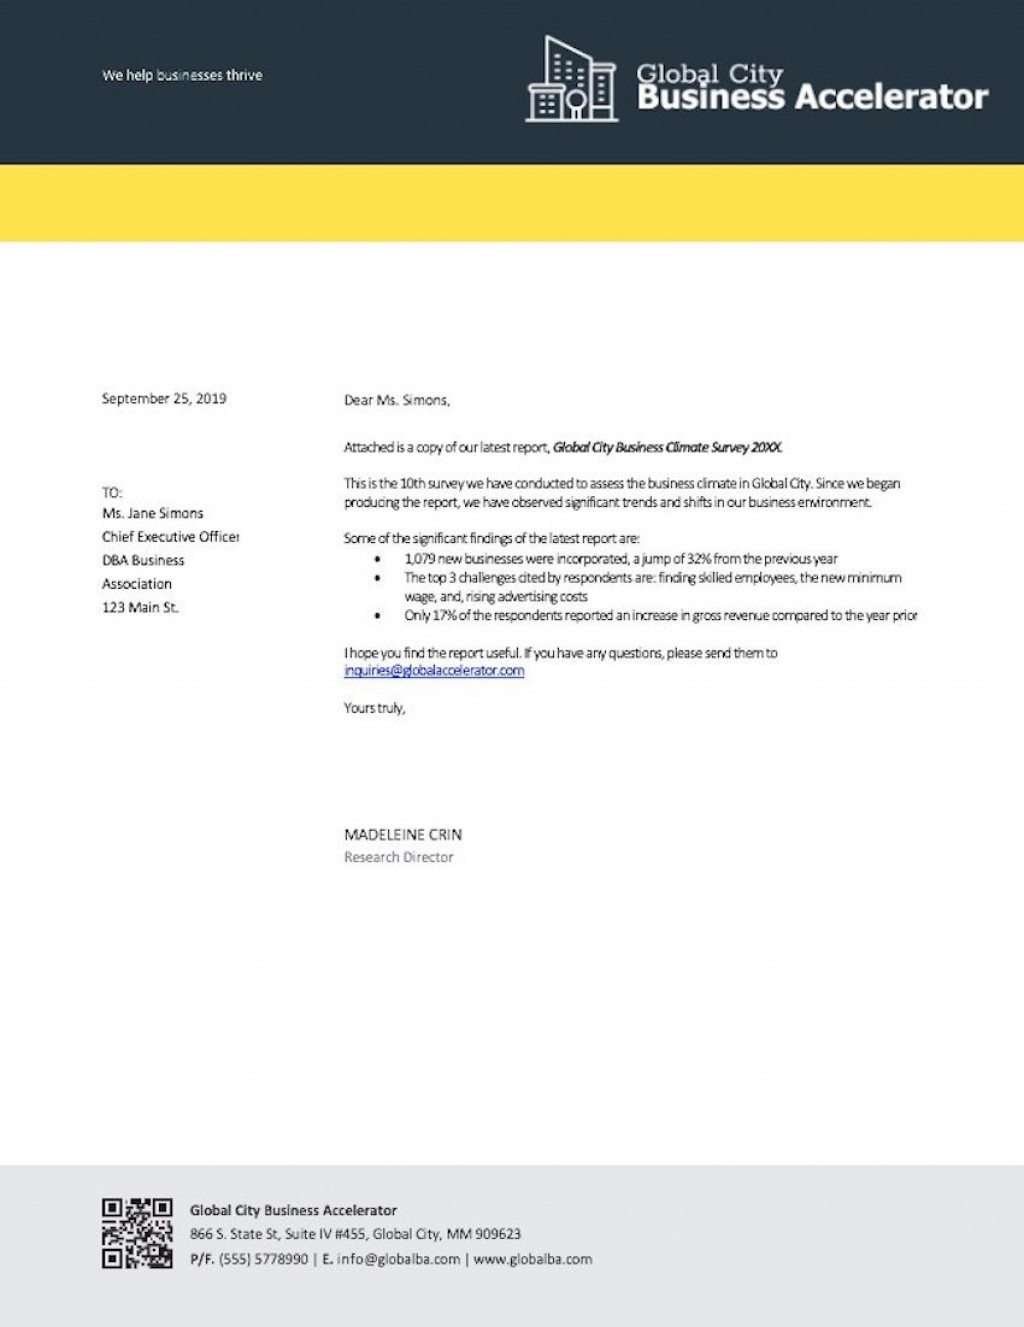 Microsoft Word Letter Template from www.addictionary.org